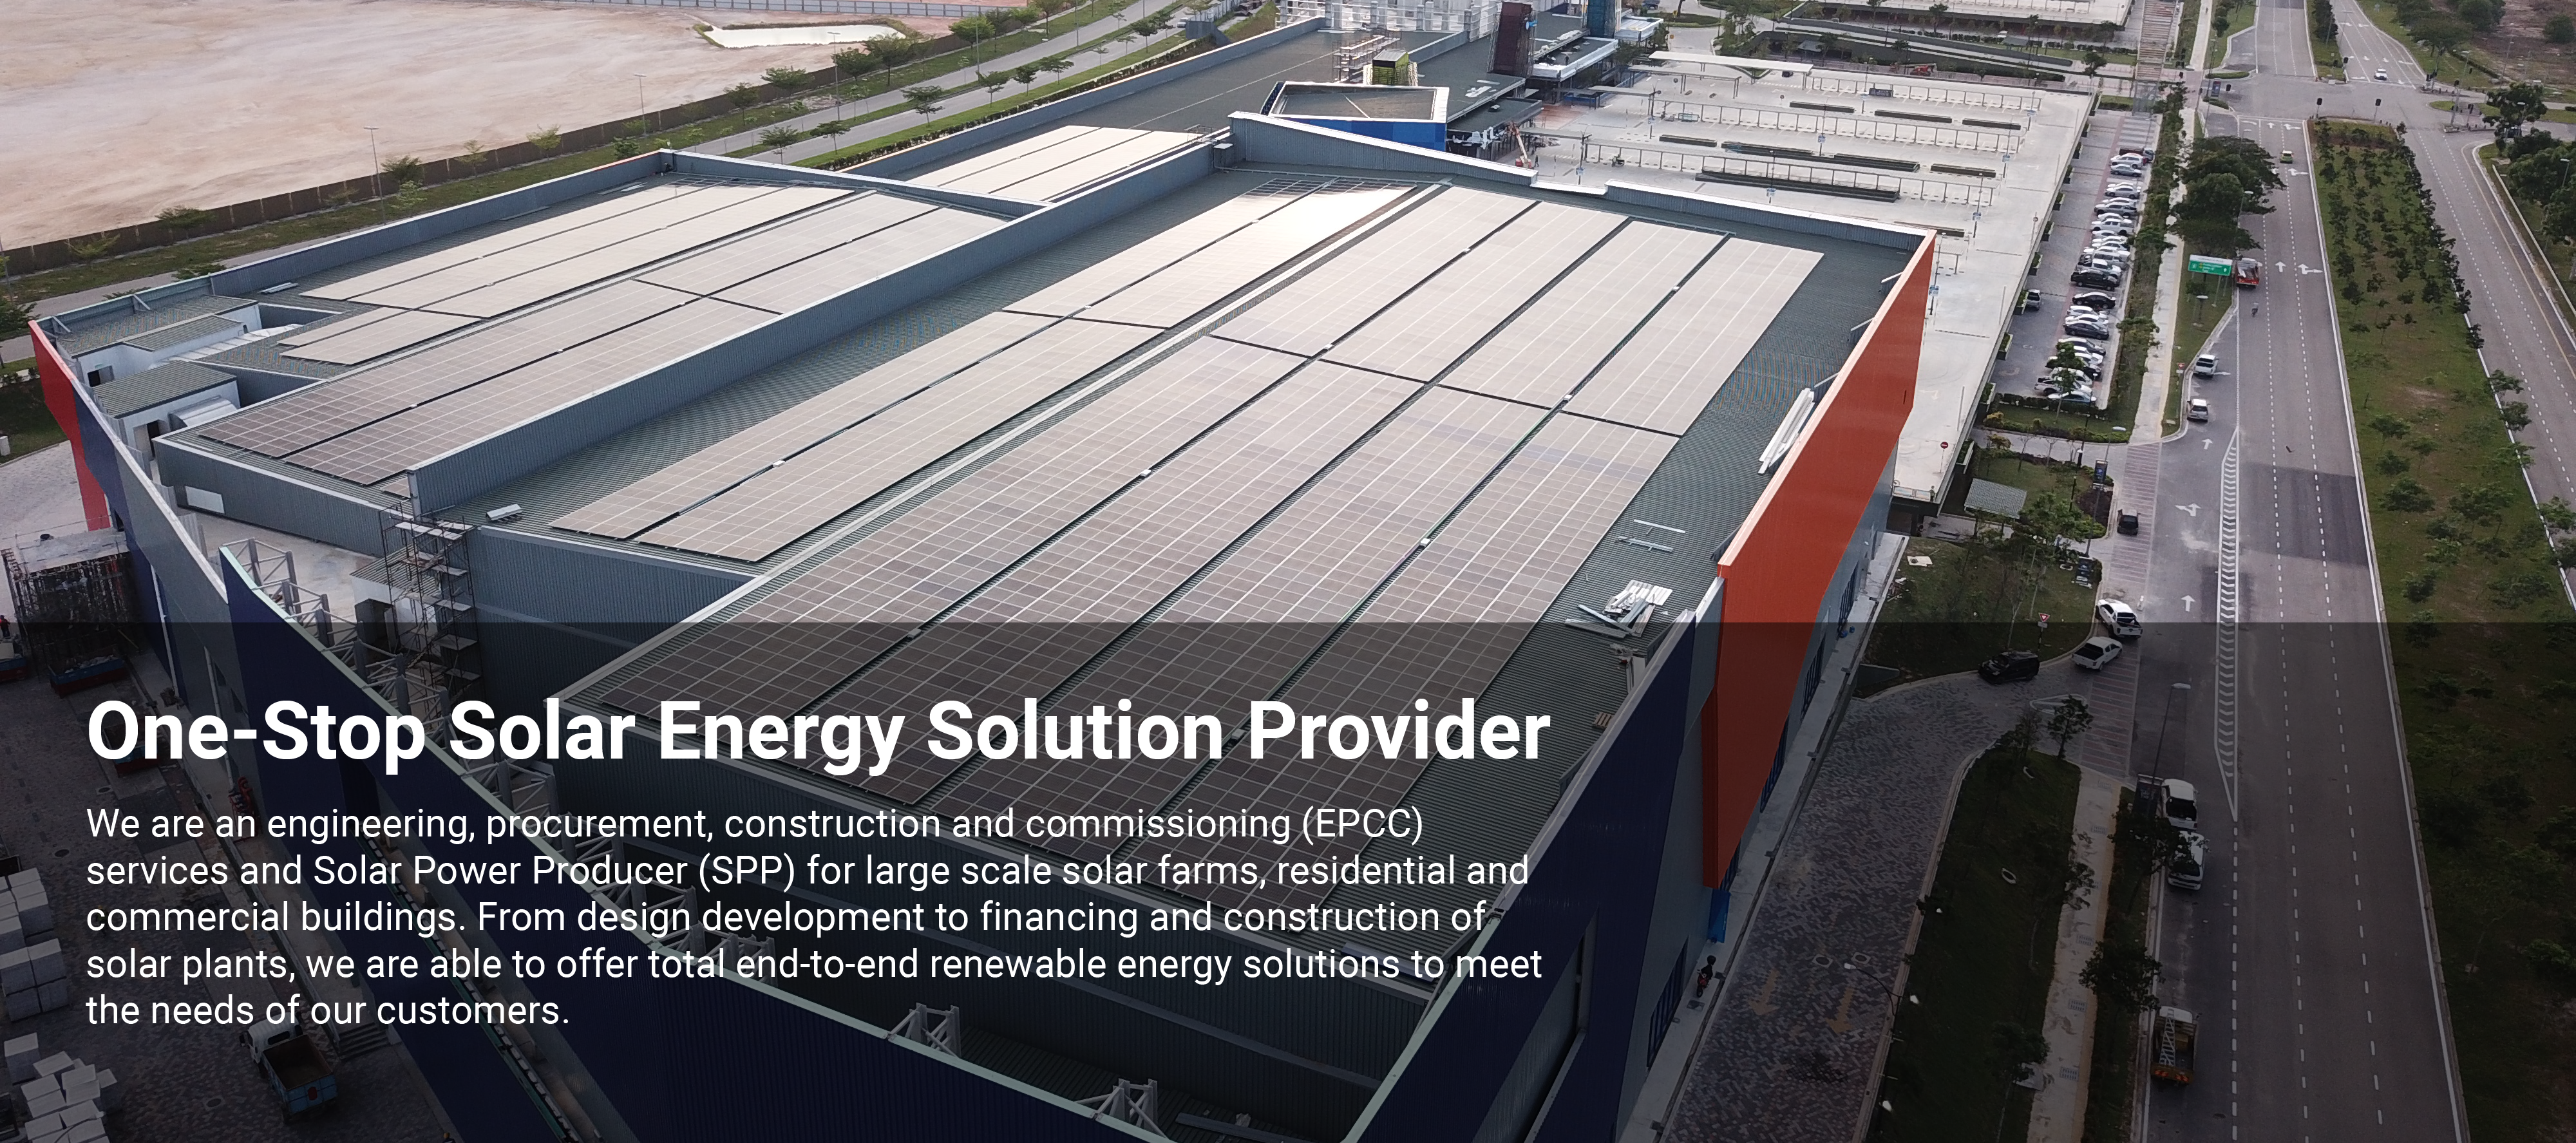 We are an engineering, procurement, construction and commissioning (EPCC) services and Solar Power Producer (SPP) for large scale solar farms, residential and commercial buildings. From design development to financing and construction of solar plants, we are able to offer total end-to-end renewable energy solutions to meet the needs of our customers.